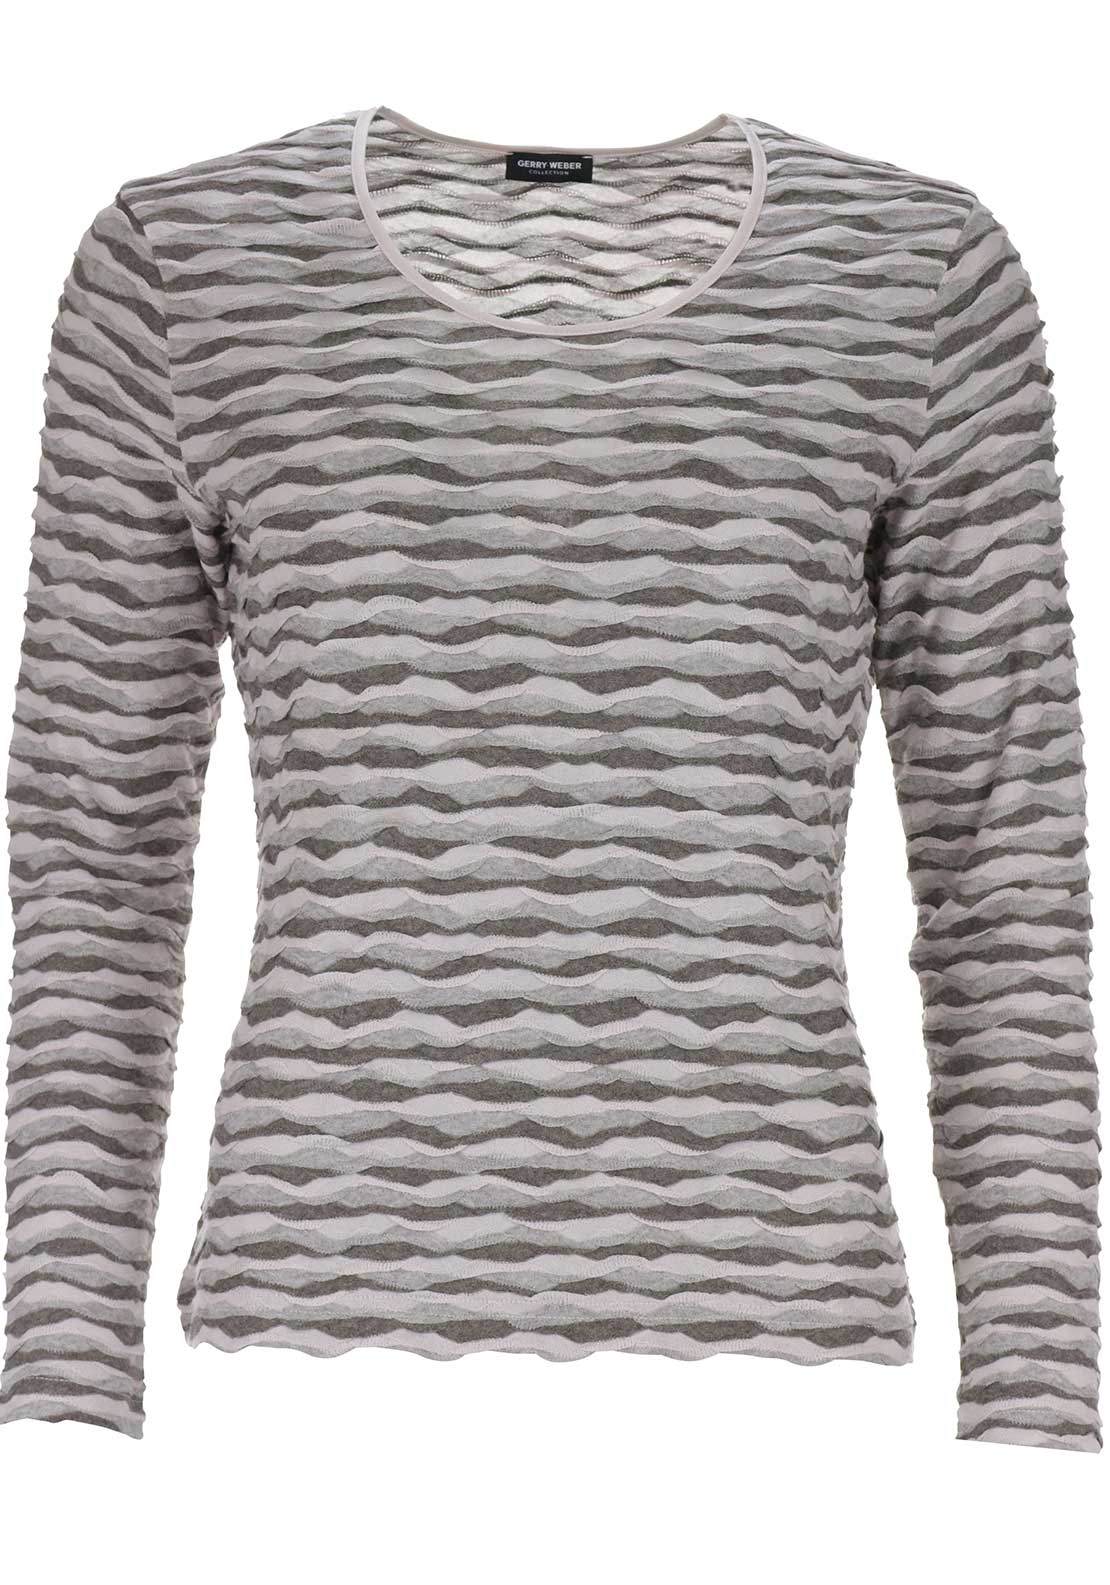 Gerry Weber Textured Print Top, Pink